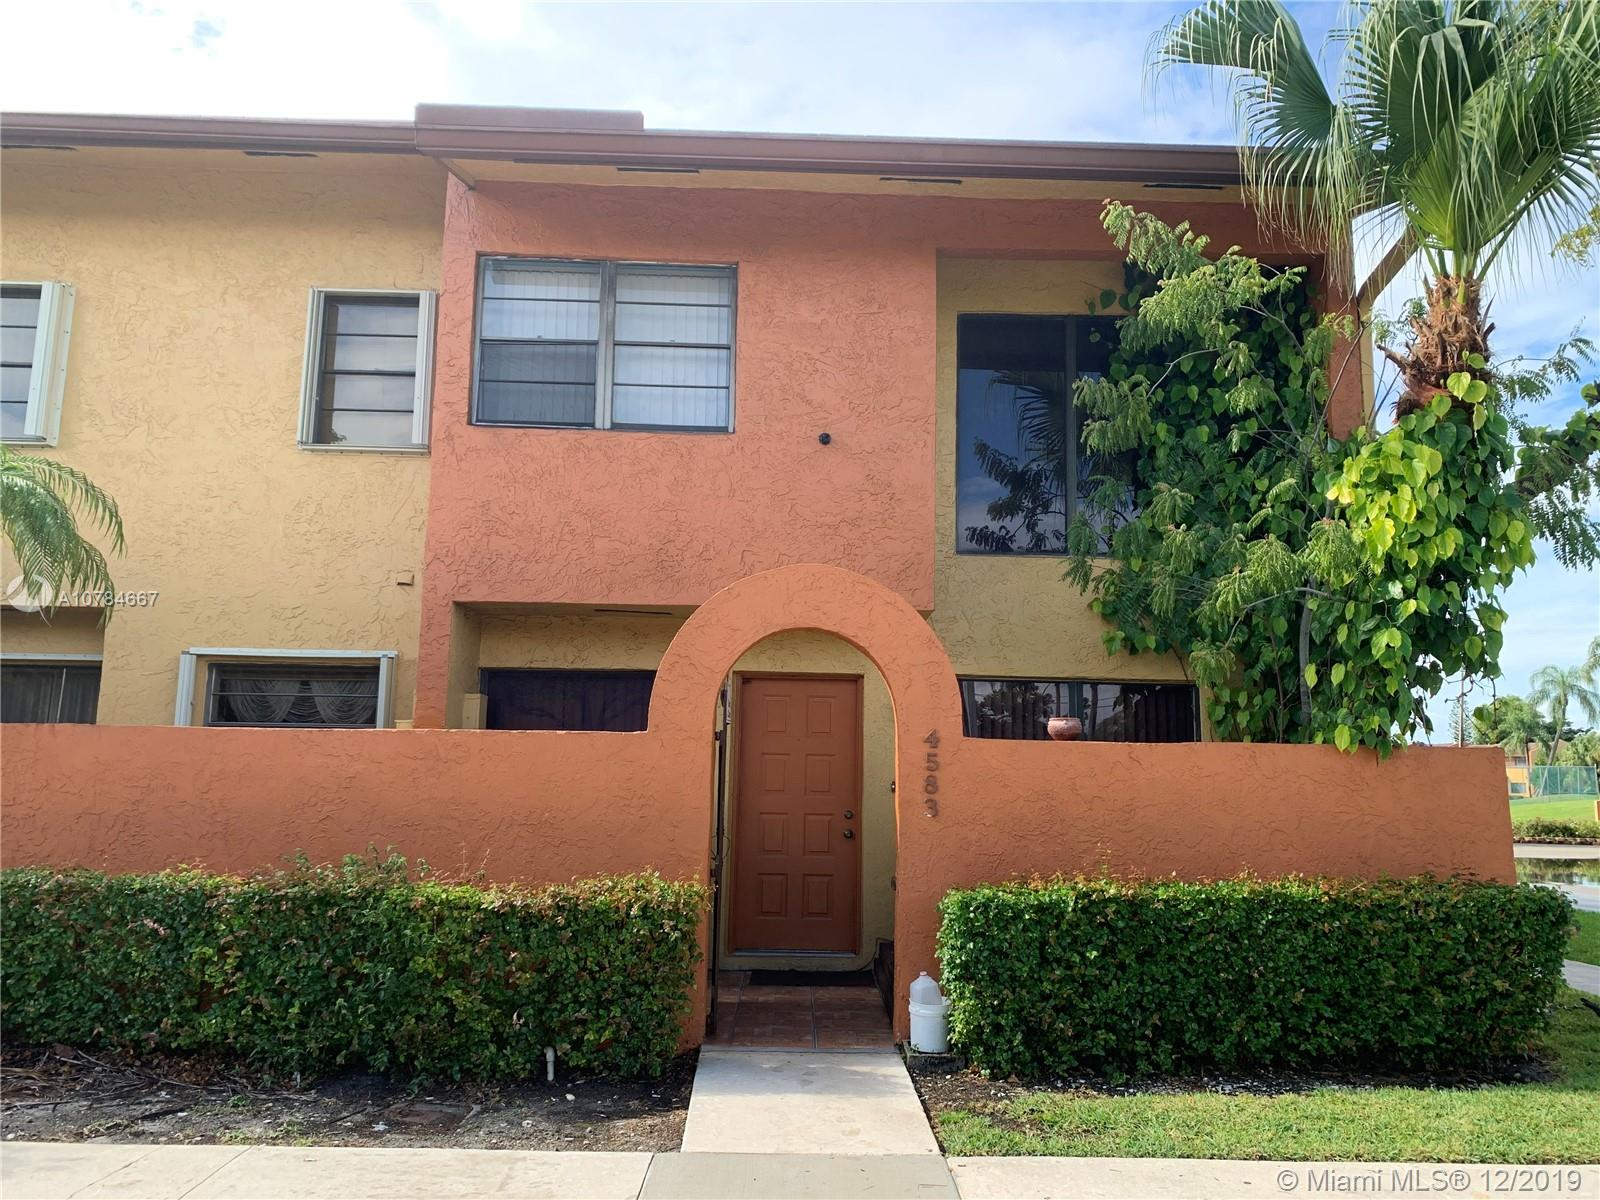 4583 90th ave, Sunrise, Florida 33351, 3 Bedrooms Bedrooms, 5 Rooms Rooms,3 BathroomsBathrooms,Residential,For Sale,4583 90th ave,A10784667